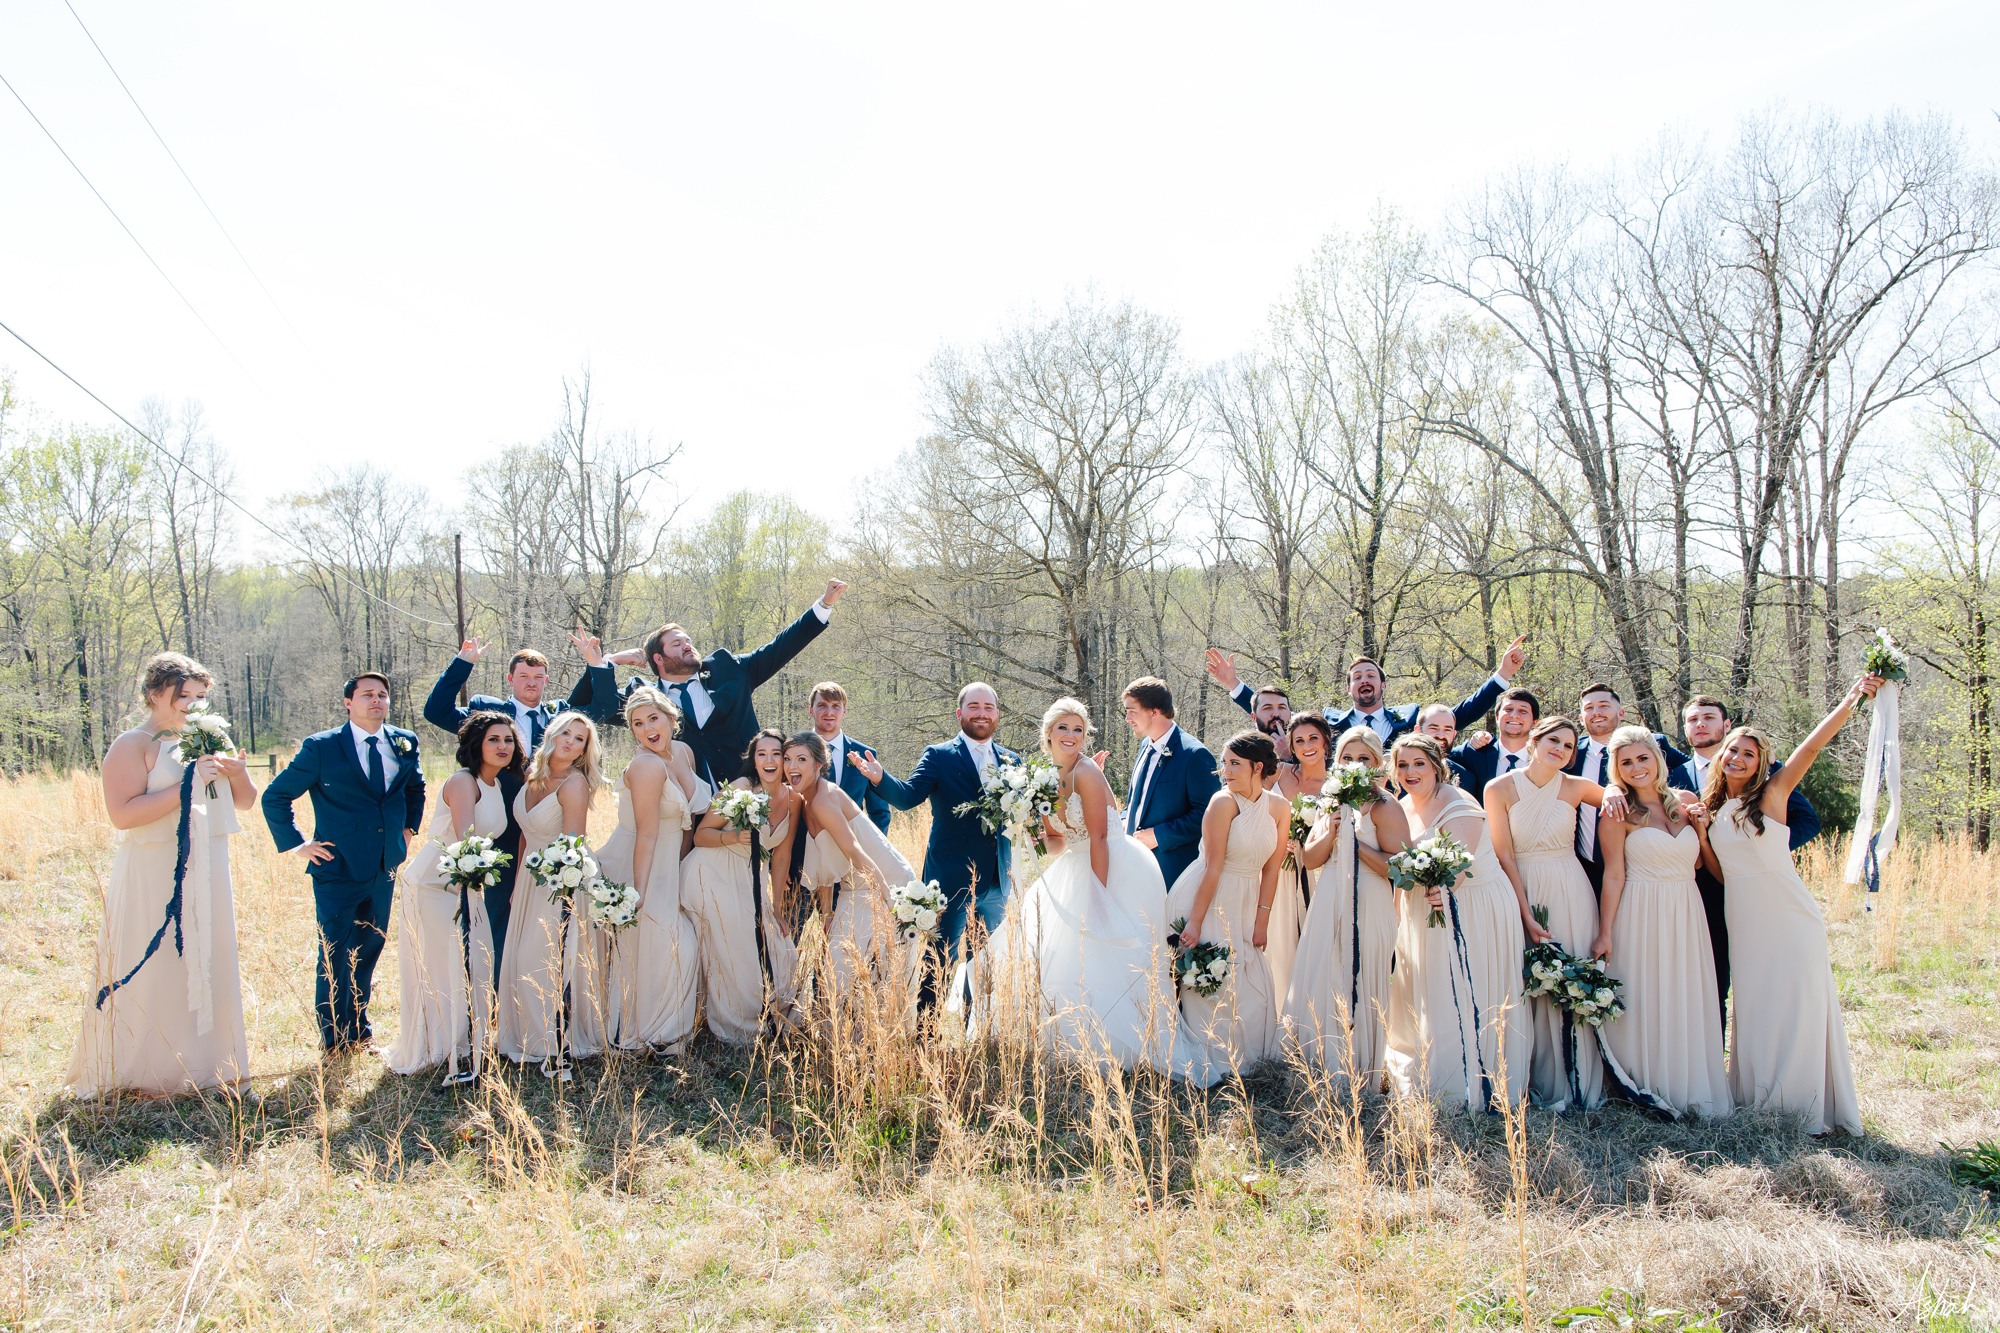 Wil & Makayla had a huge bridal party, which made pictures so incredibly fun!! We love the colors they used, and that Makayla chose neutrals for her bridal party.